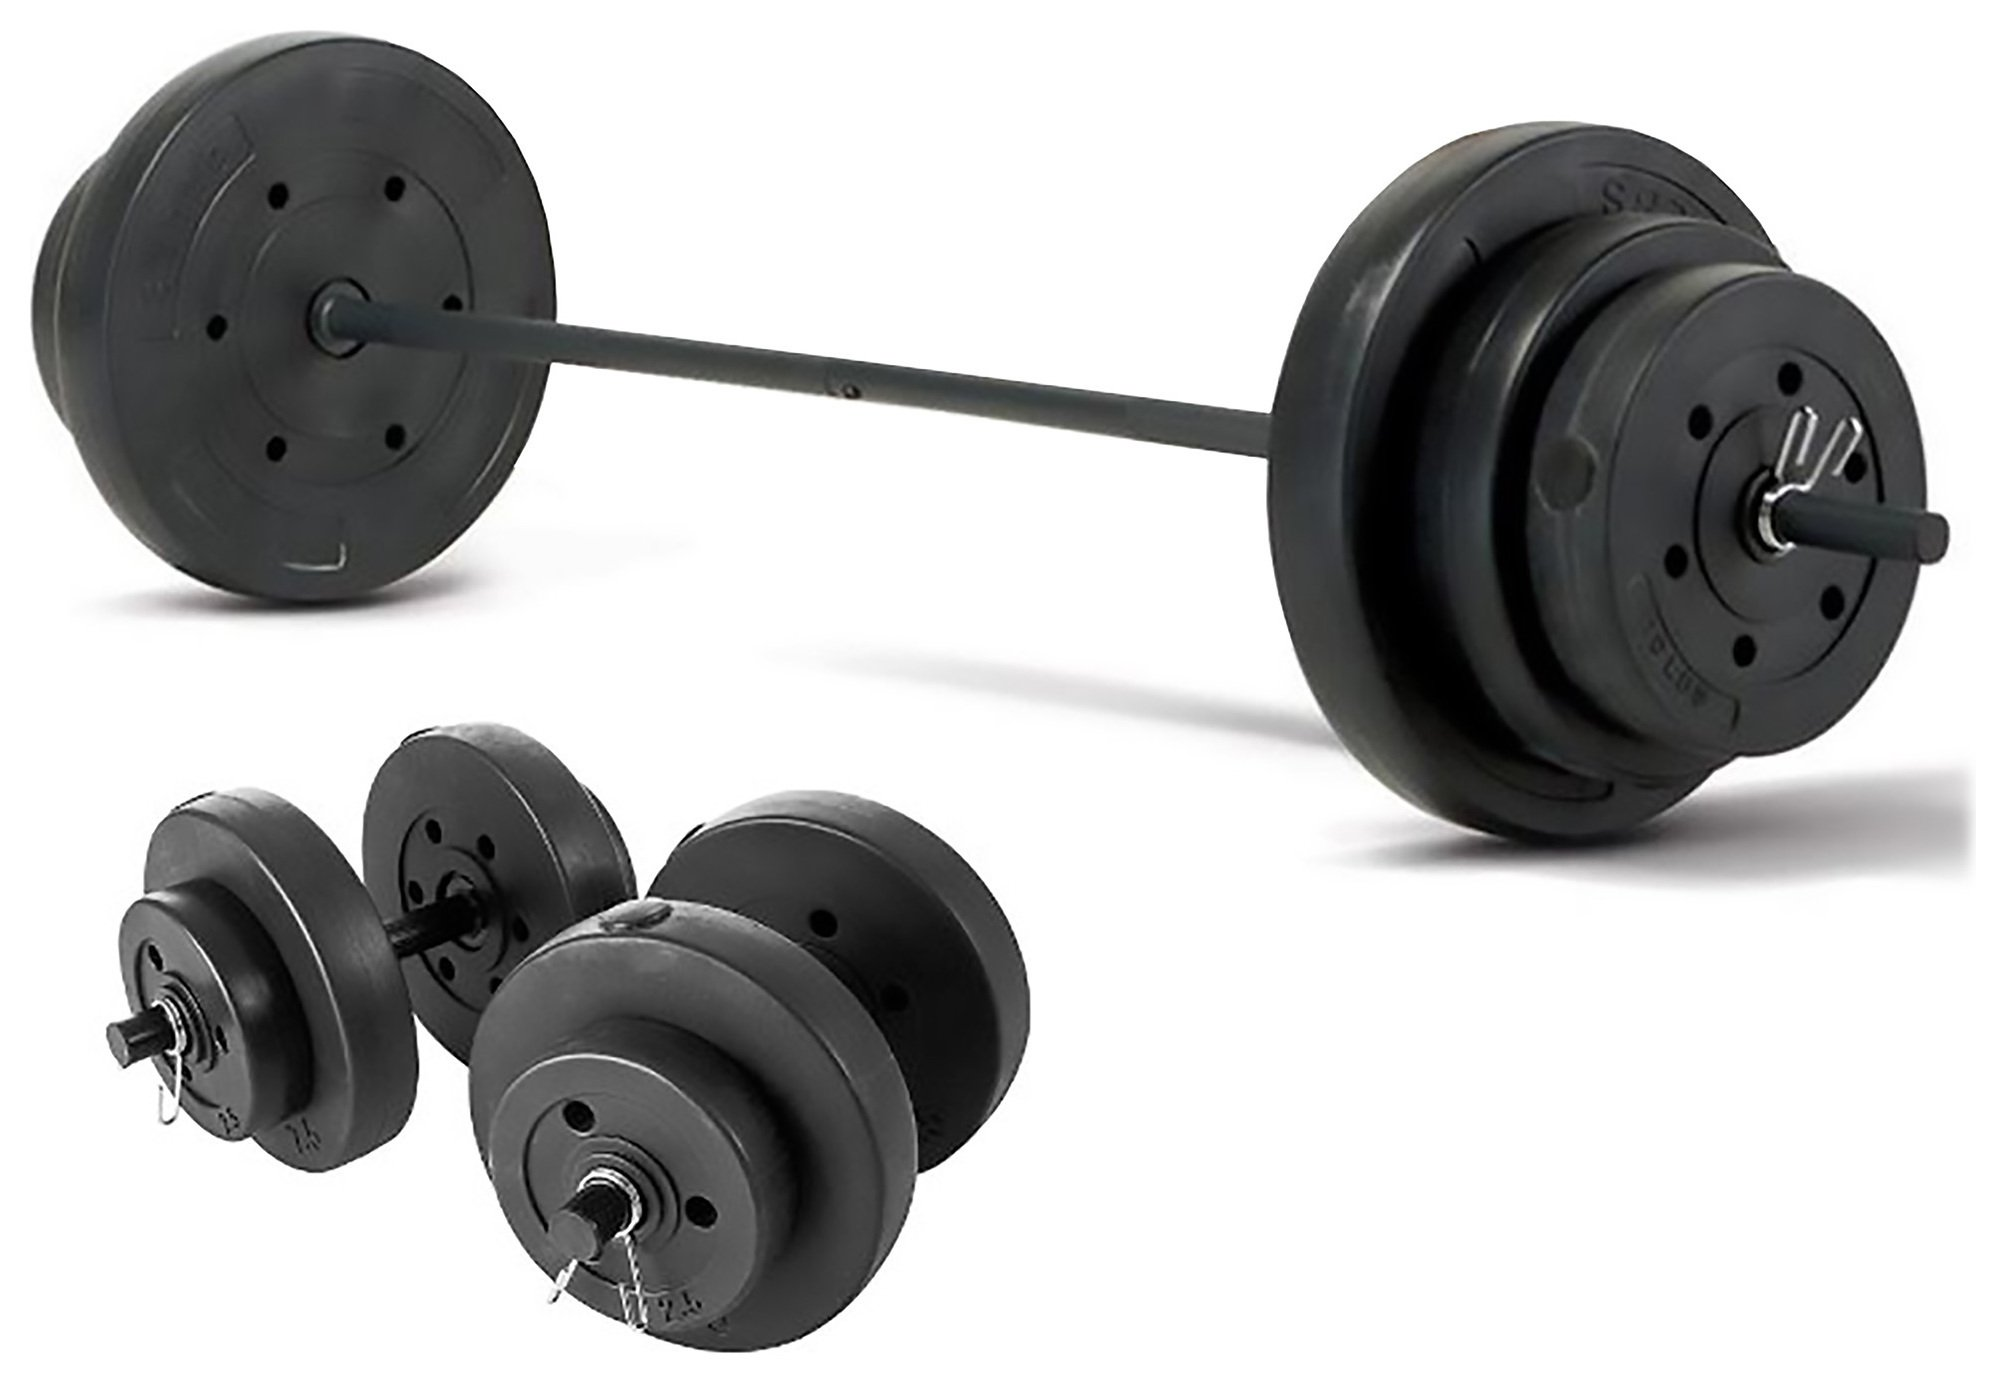 Marcy 50kg Barbell & Dumbbell Weight Set